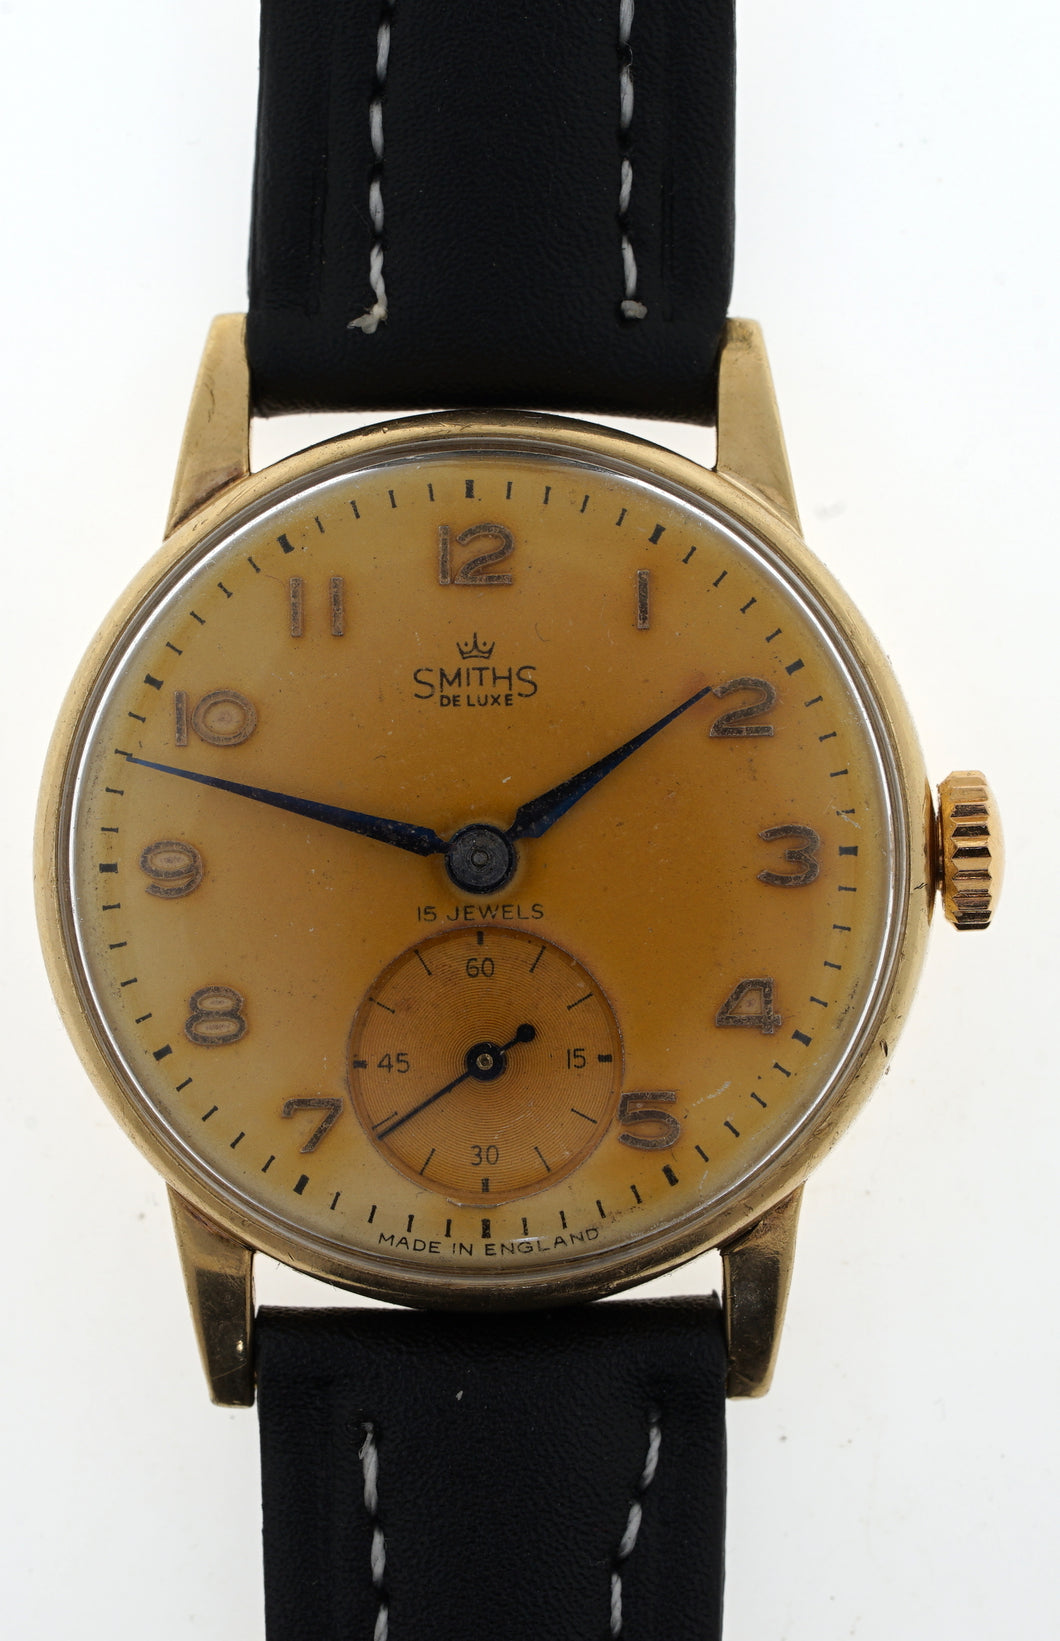 DELUXE SMITHS 9CT GOLD BRITISH RAIL ISSUE LONG SERVICE WATCH GOOD WORKING ORDER 1960